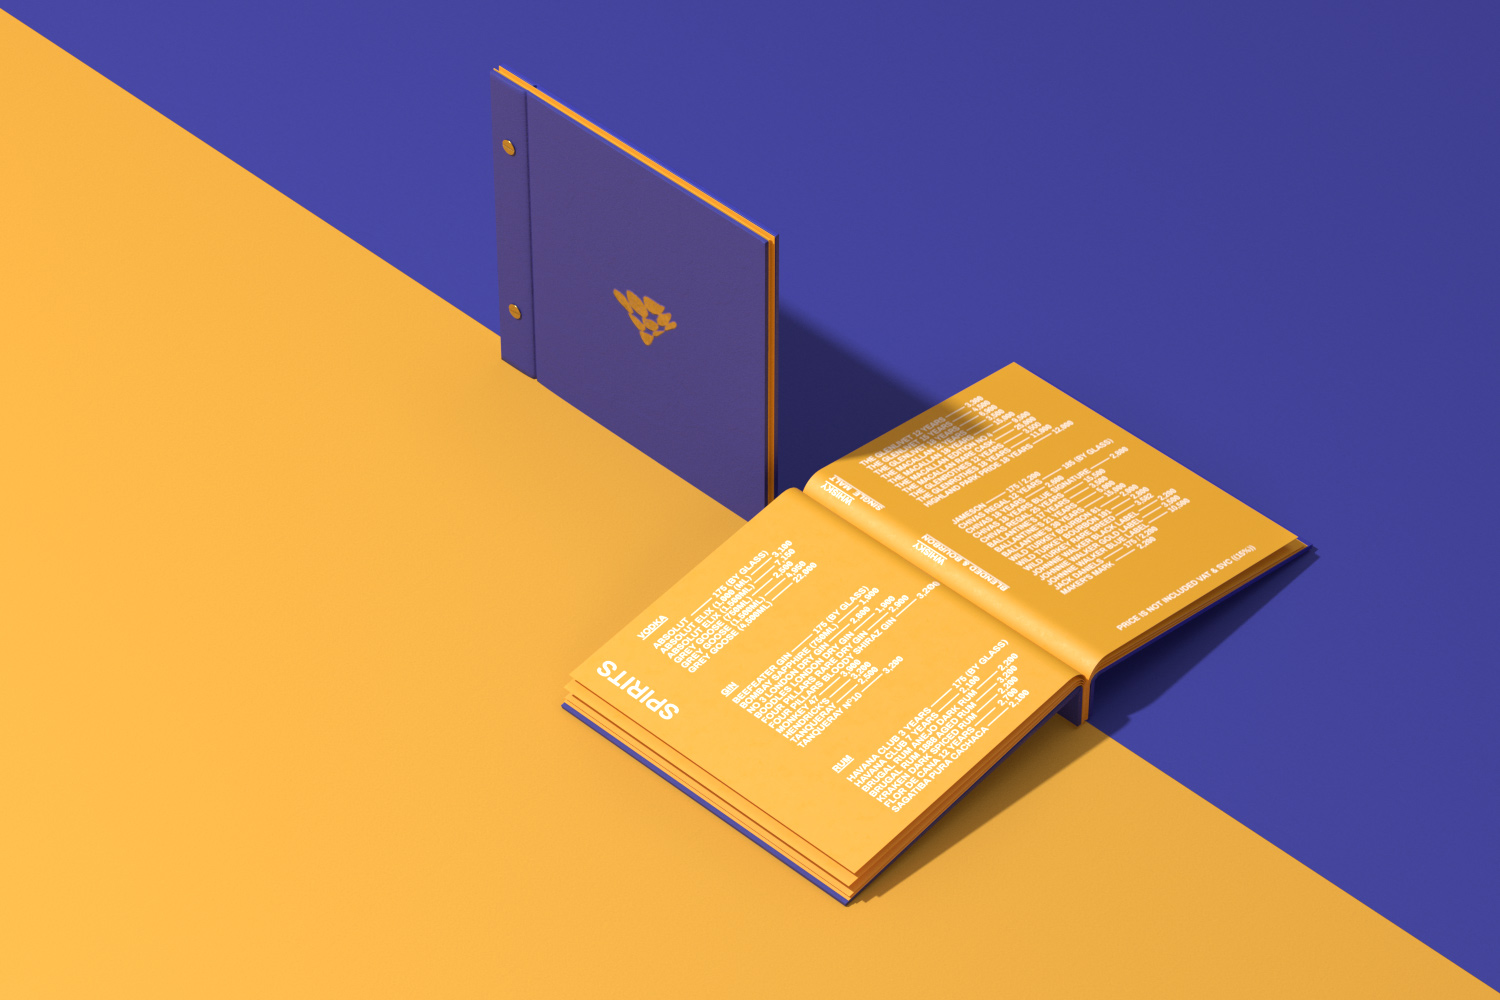 Epic drinklist on yellow and blue background